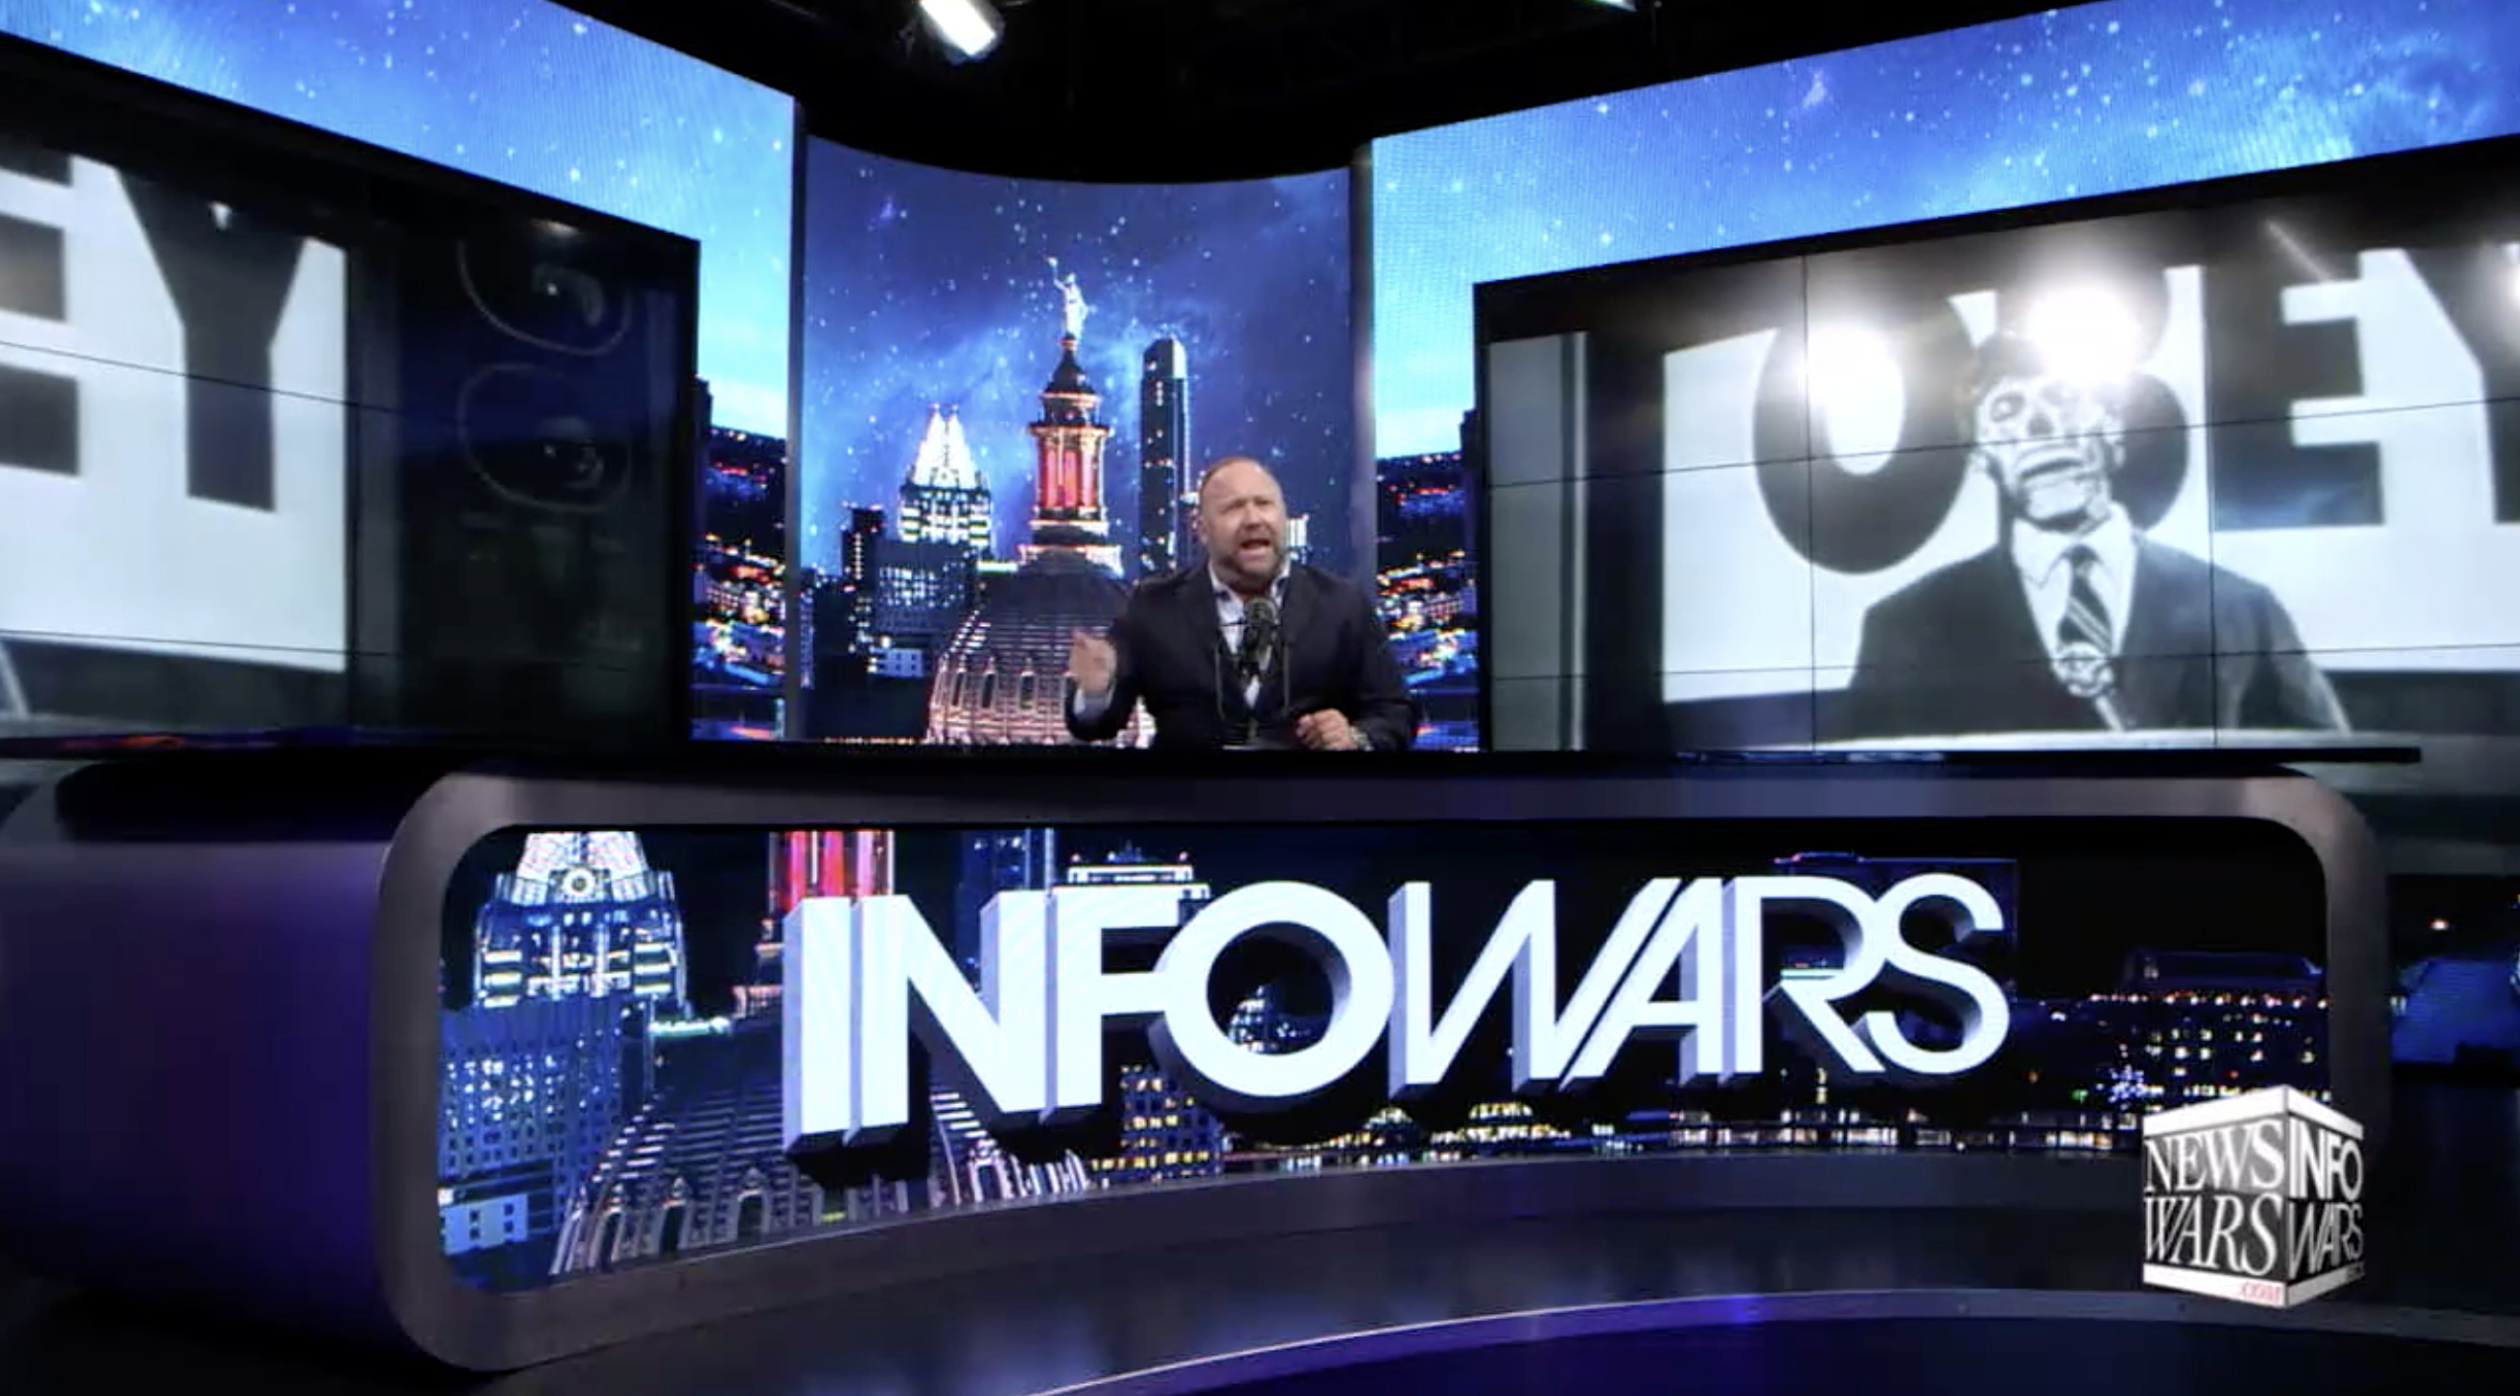 Alex Jones Infowars Studio EXZM Coronavirus COVID19 United Nations July 19th 2020